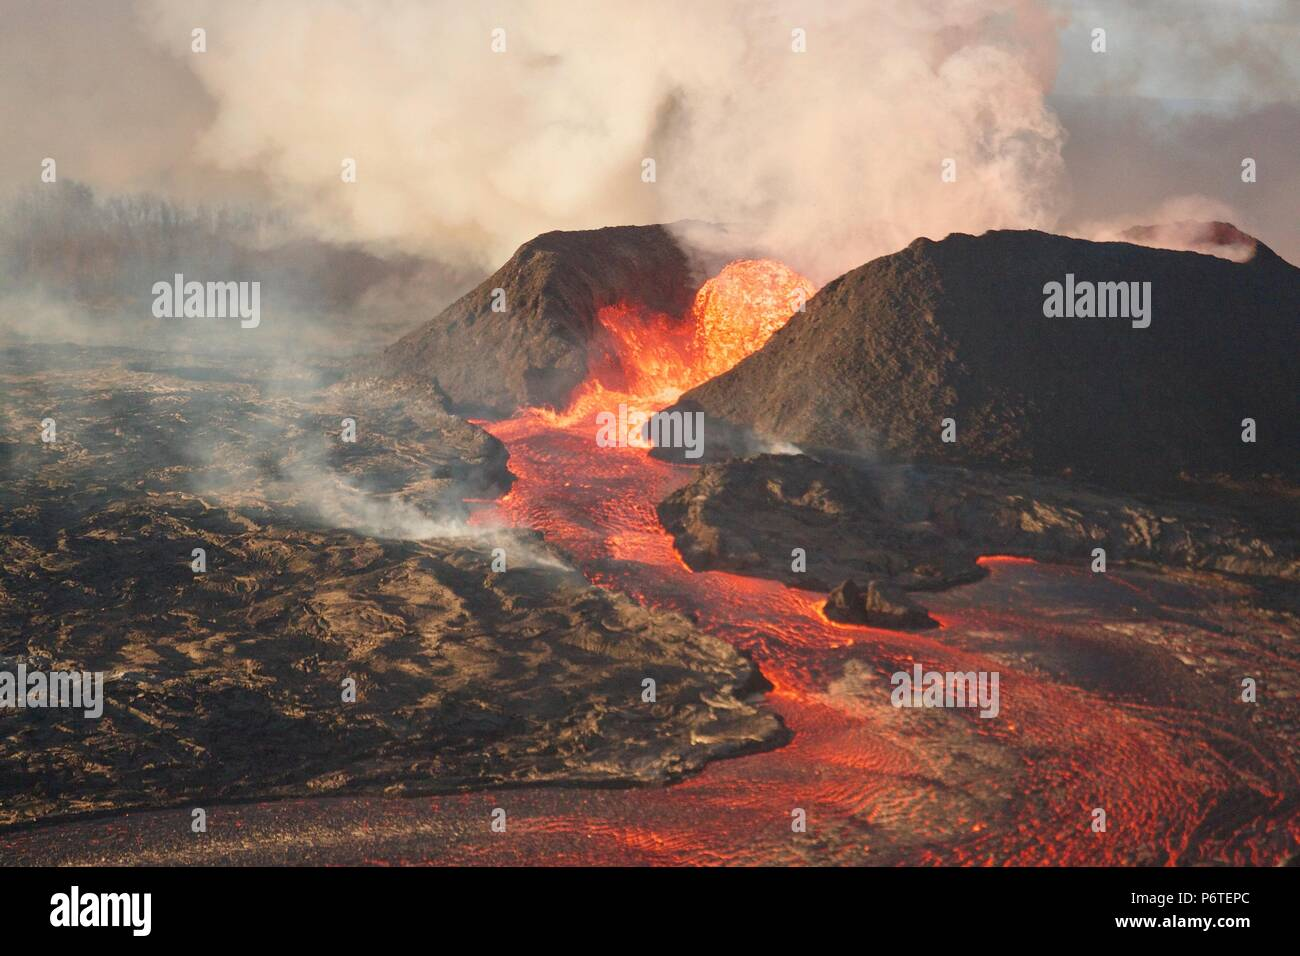 A massive lava fountain spewing magma 180 feet into the air from fissure 8 at the corner of Nohea and Leilani caused by the eruption of the Kilauea volcano June 30, 2018 in Hawaii. The recent eruption continues destroying homes, forcing evacuations and spewing lava and poison gas on the Big Island of Hawaii. - Stock Image